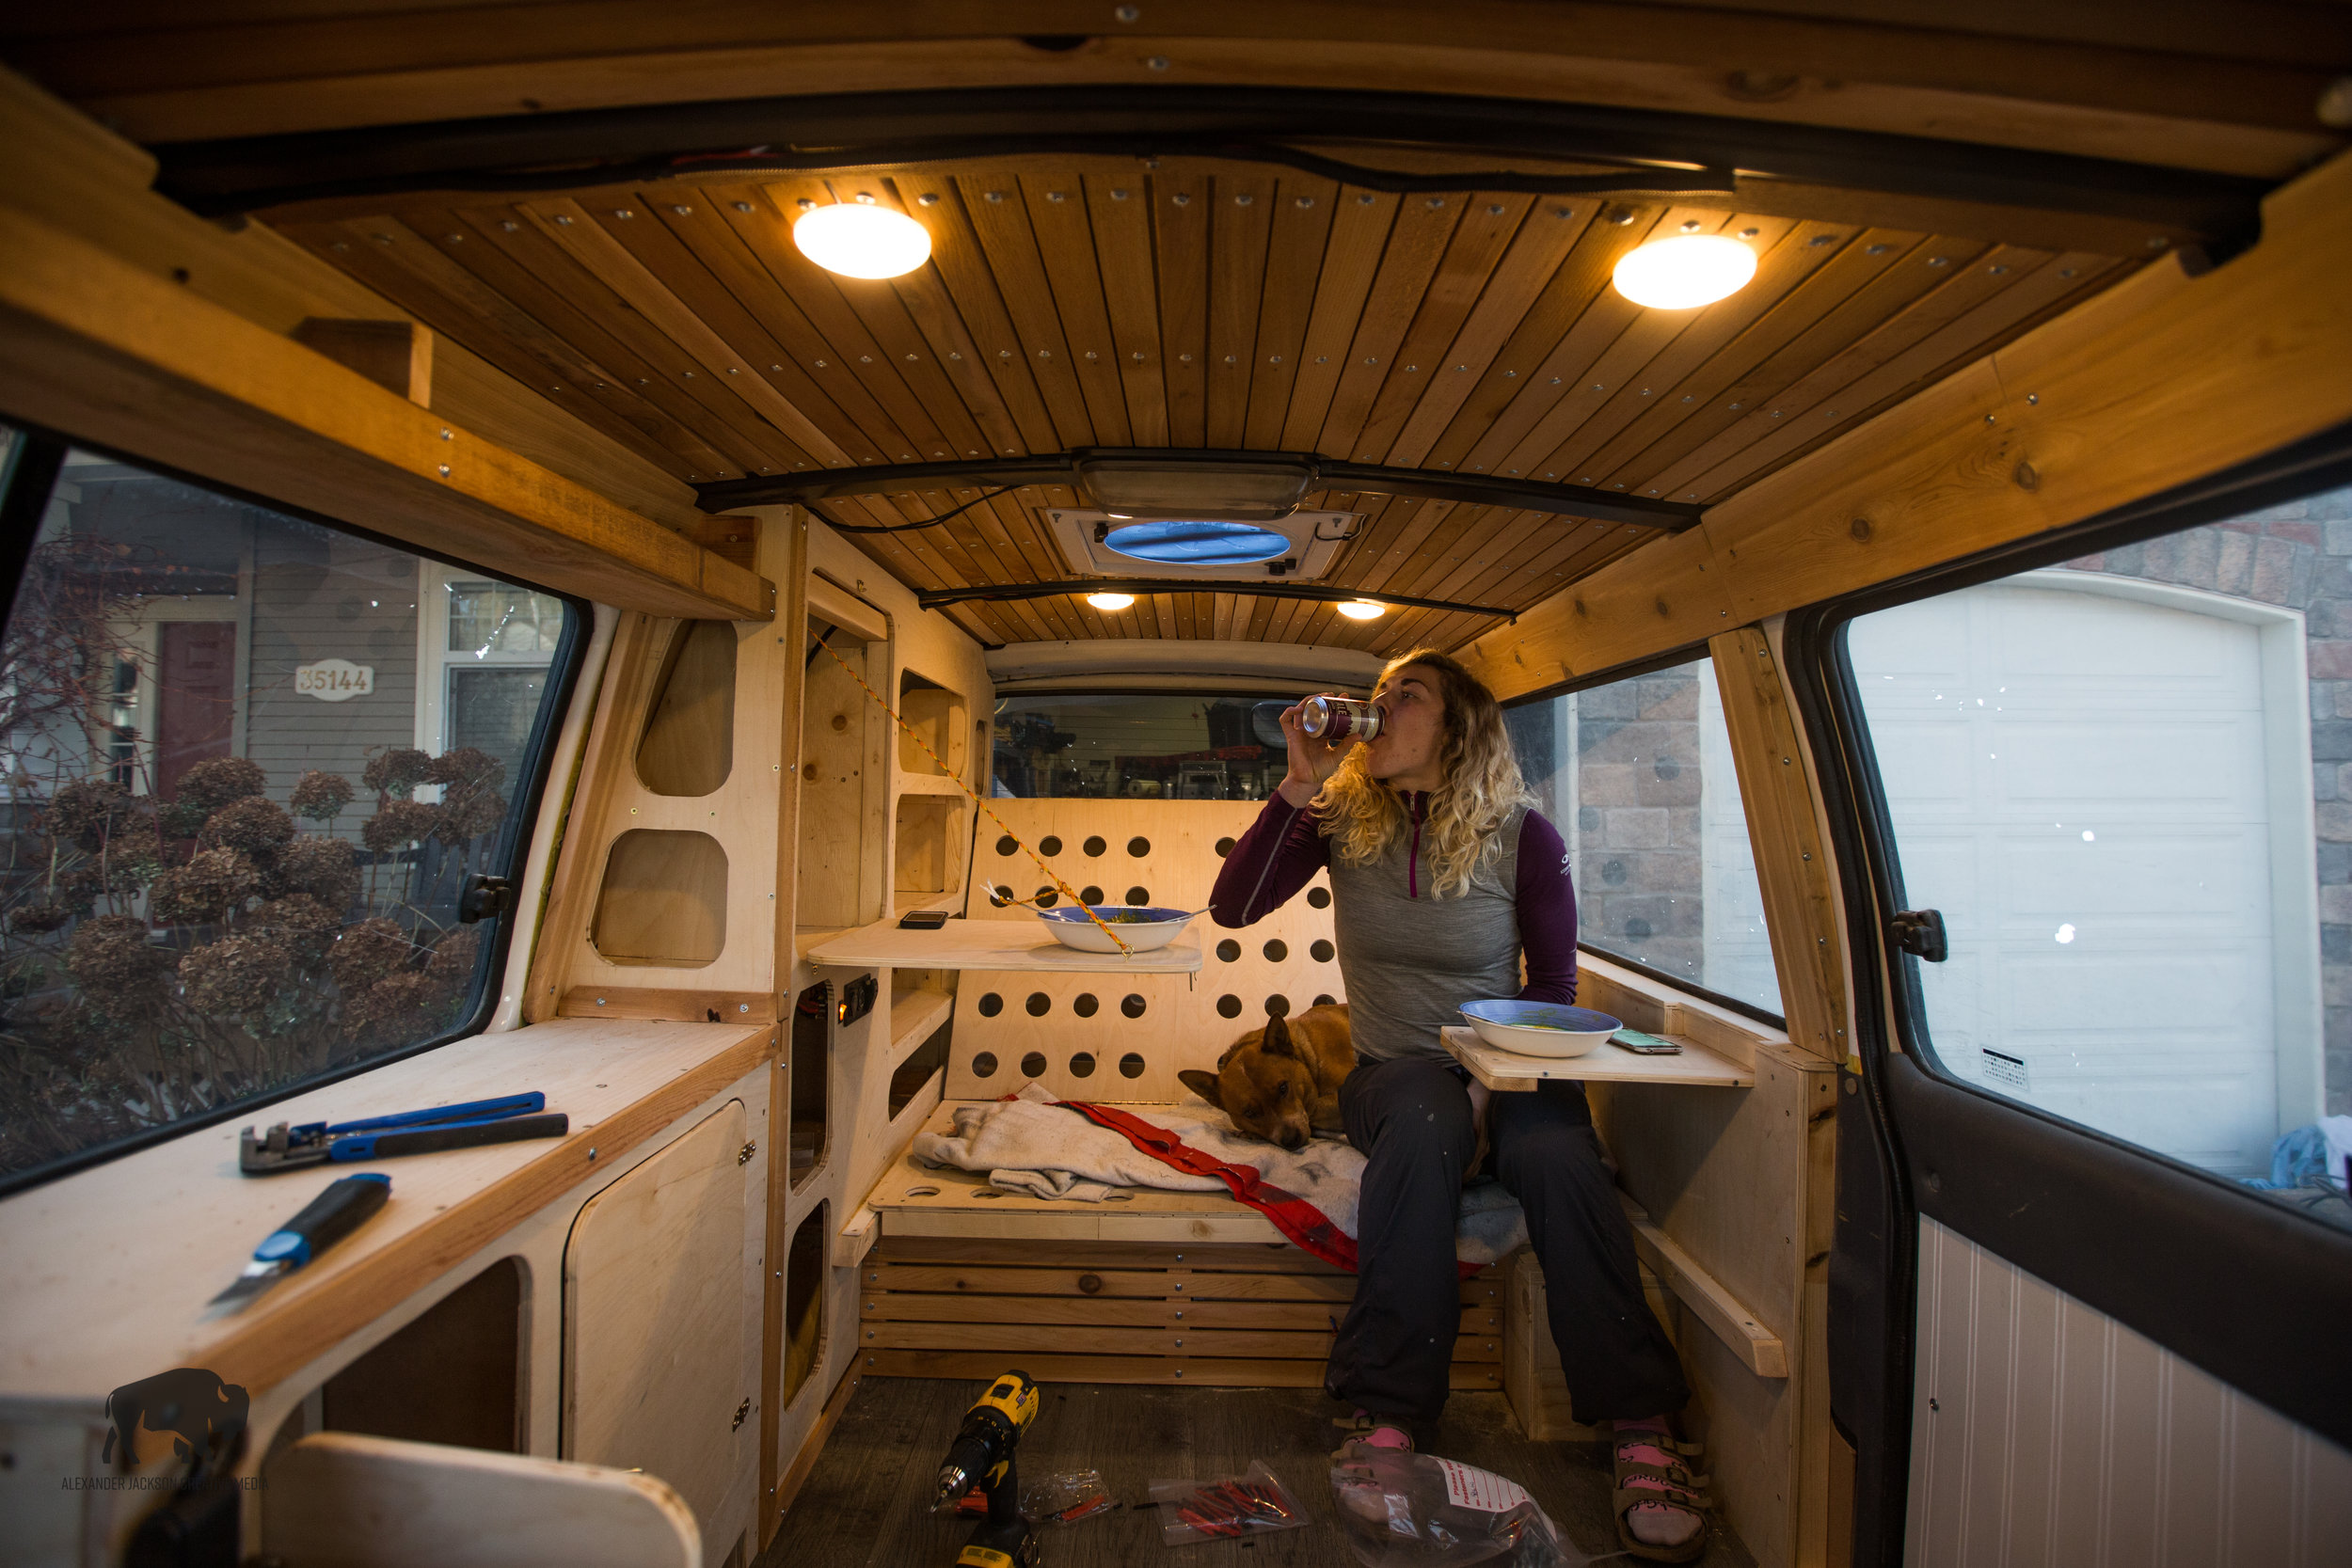 We're now able to enjoy meals inside the van, it's glorious. Also, note the little hide-away desk/ table that Alison's bowl is on. That's something I haven't shown in this blog yet.